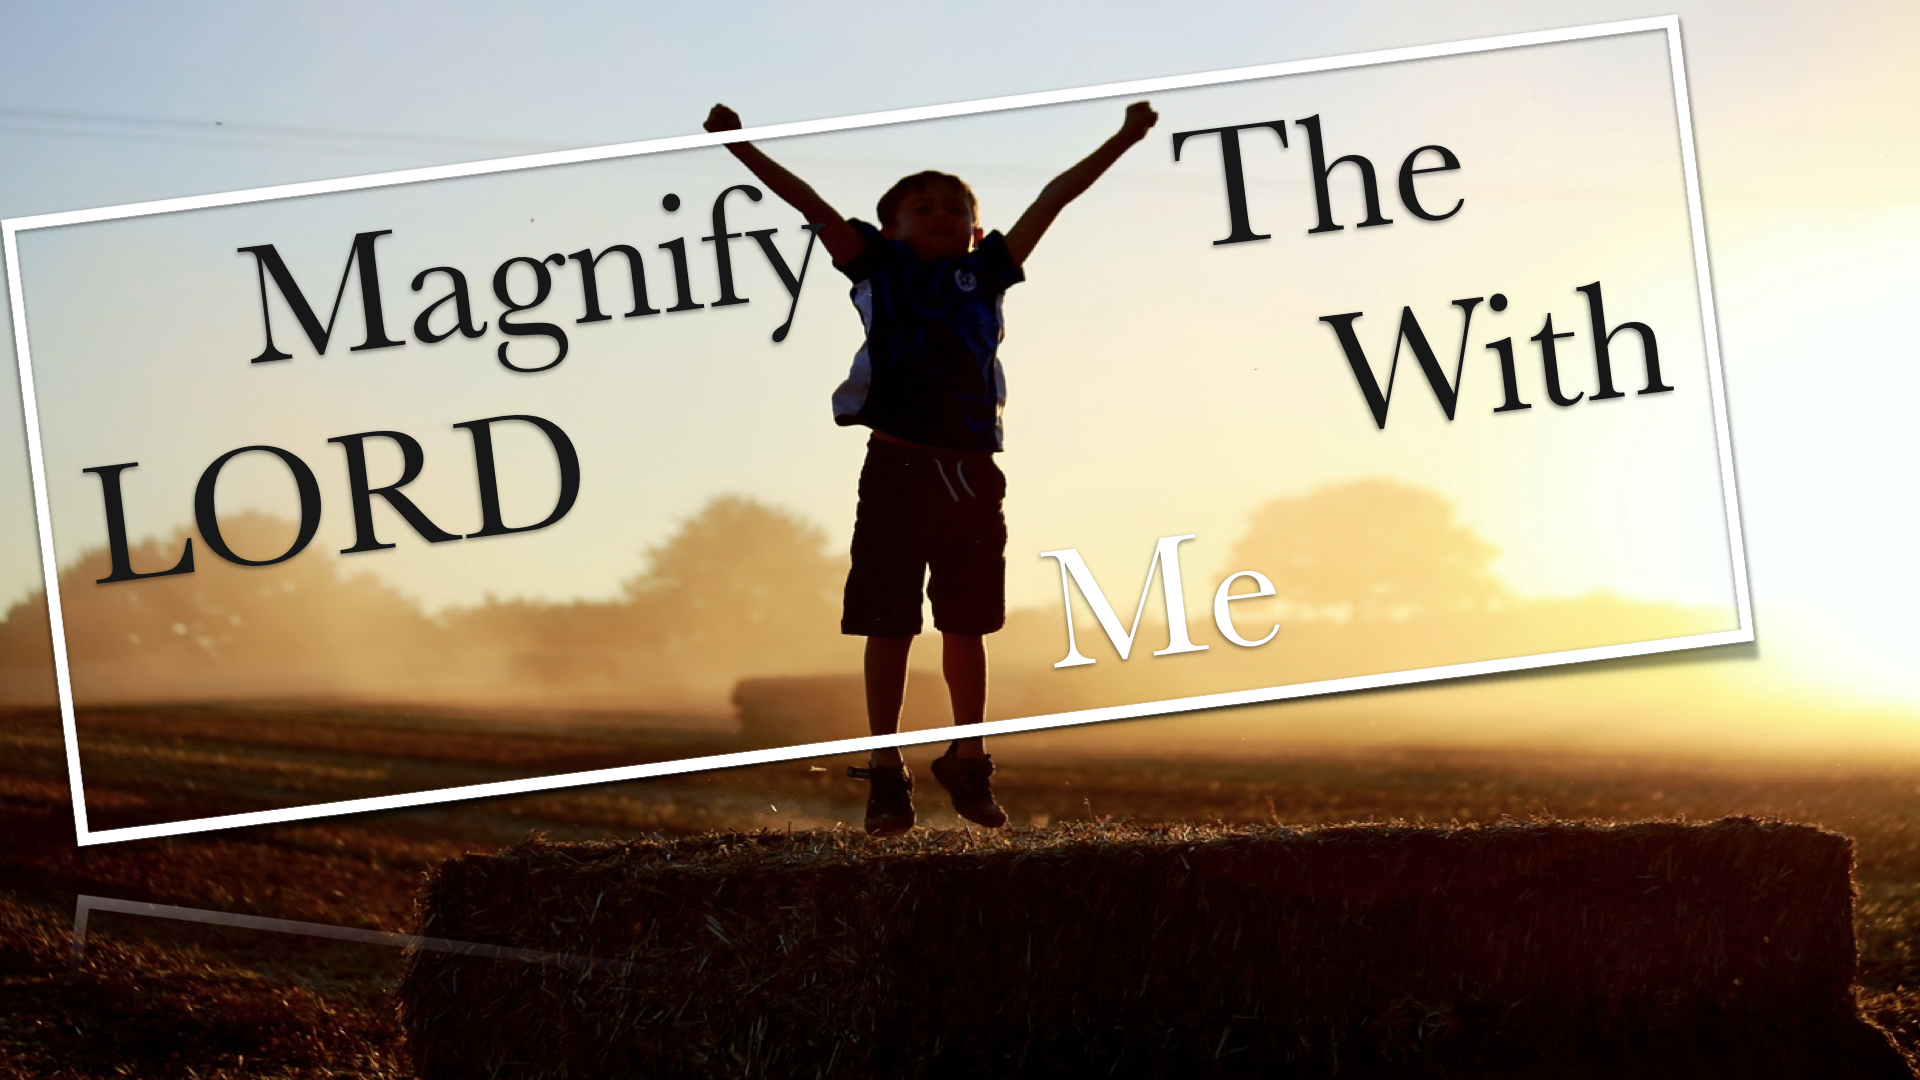 Magnify The LORD With Me 452020